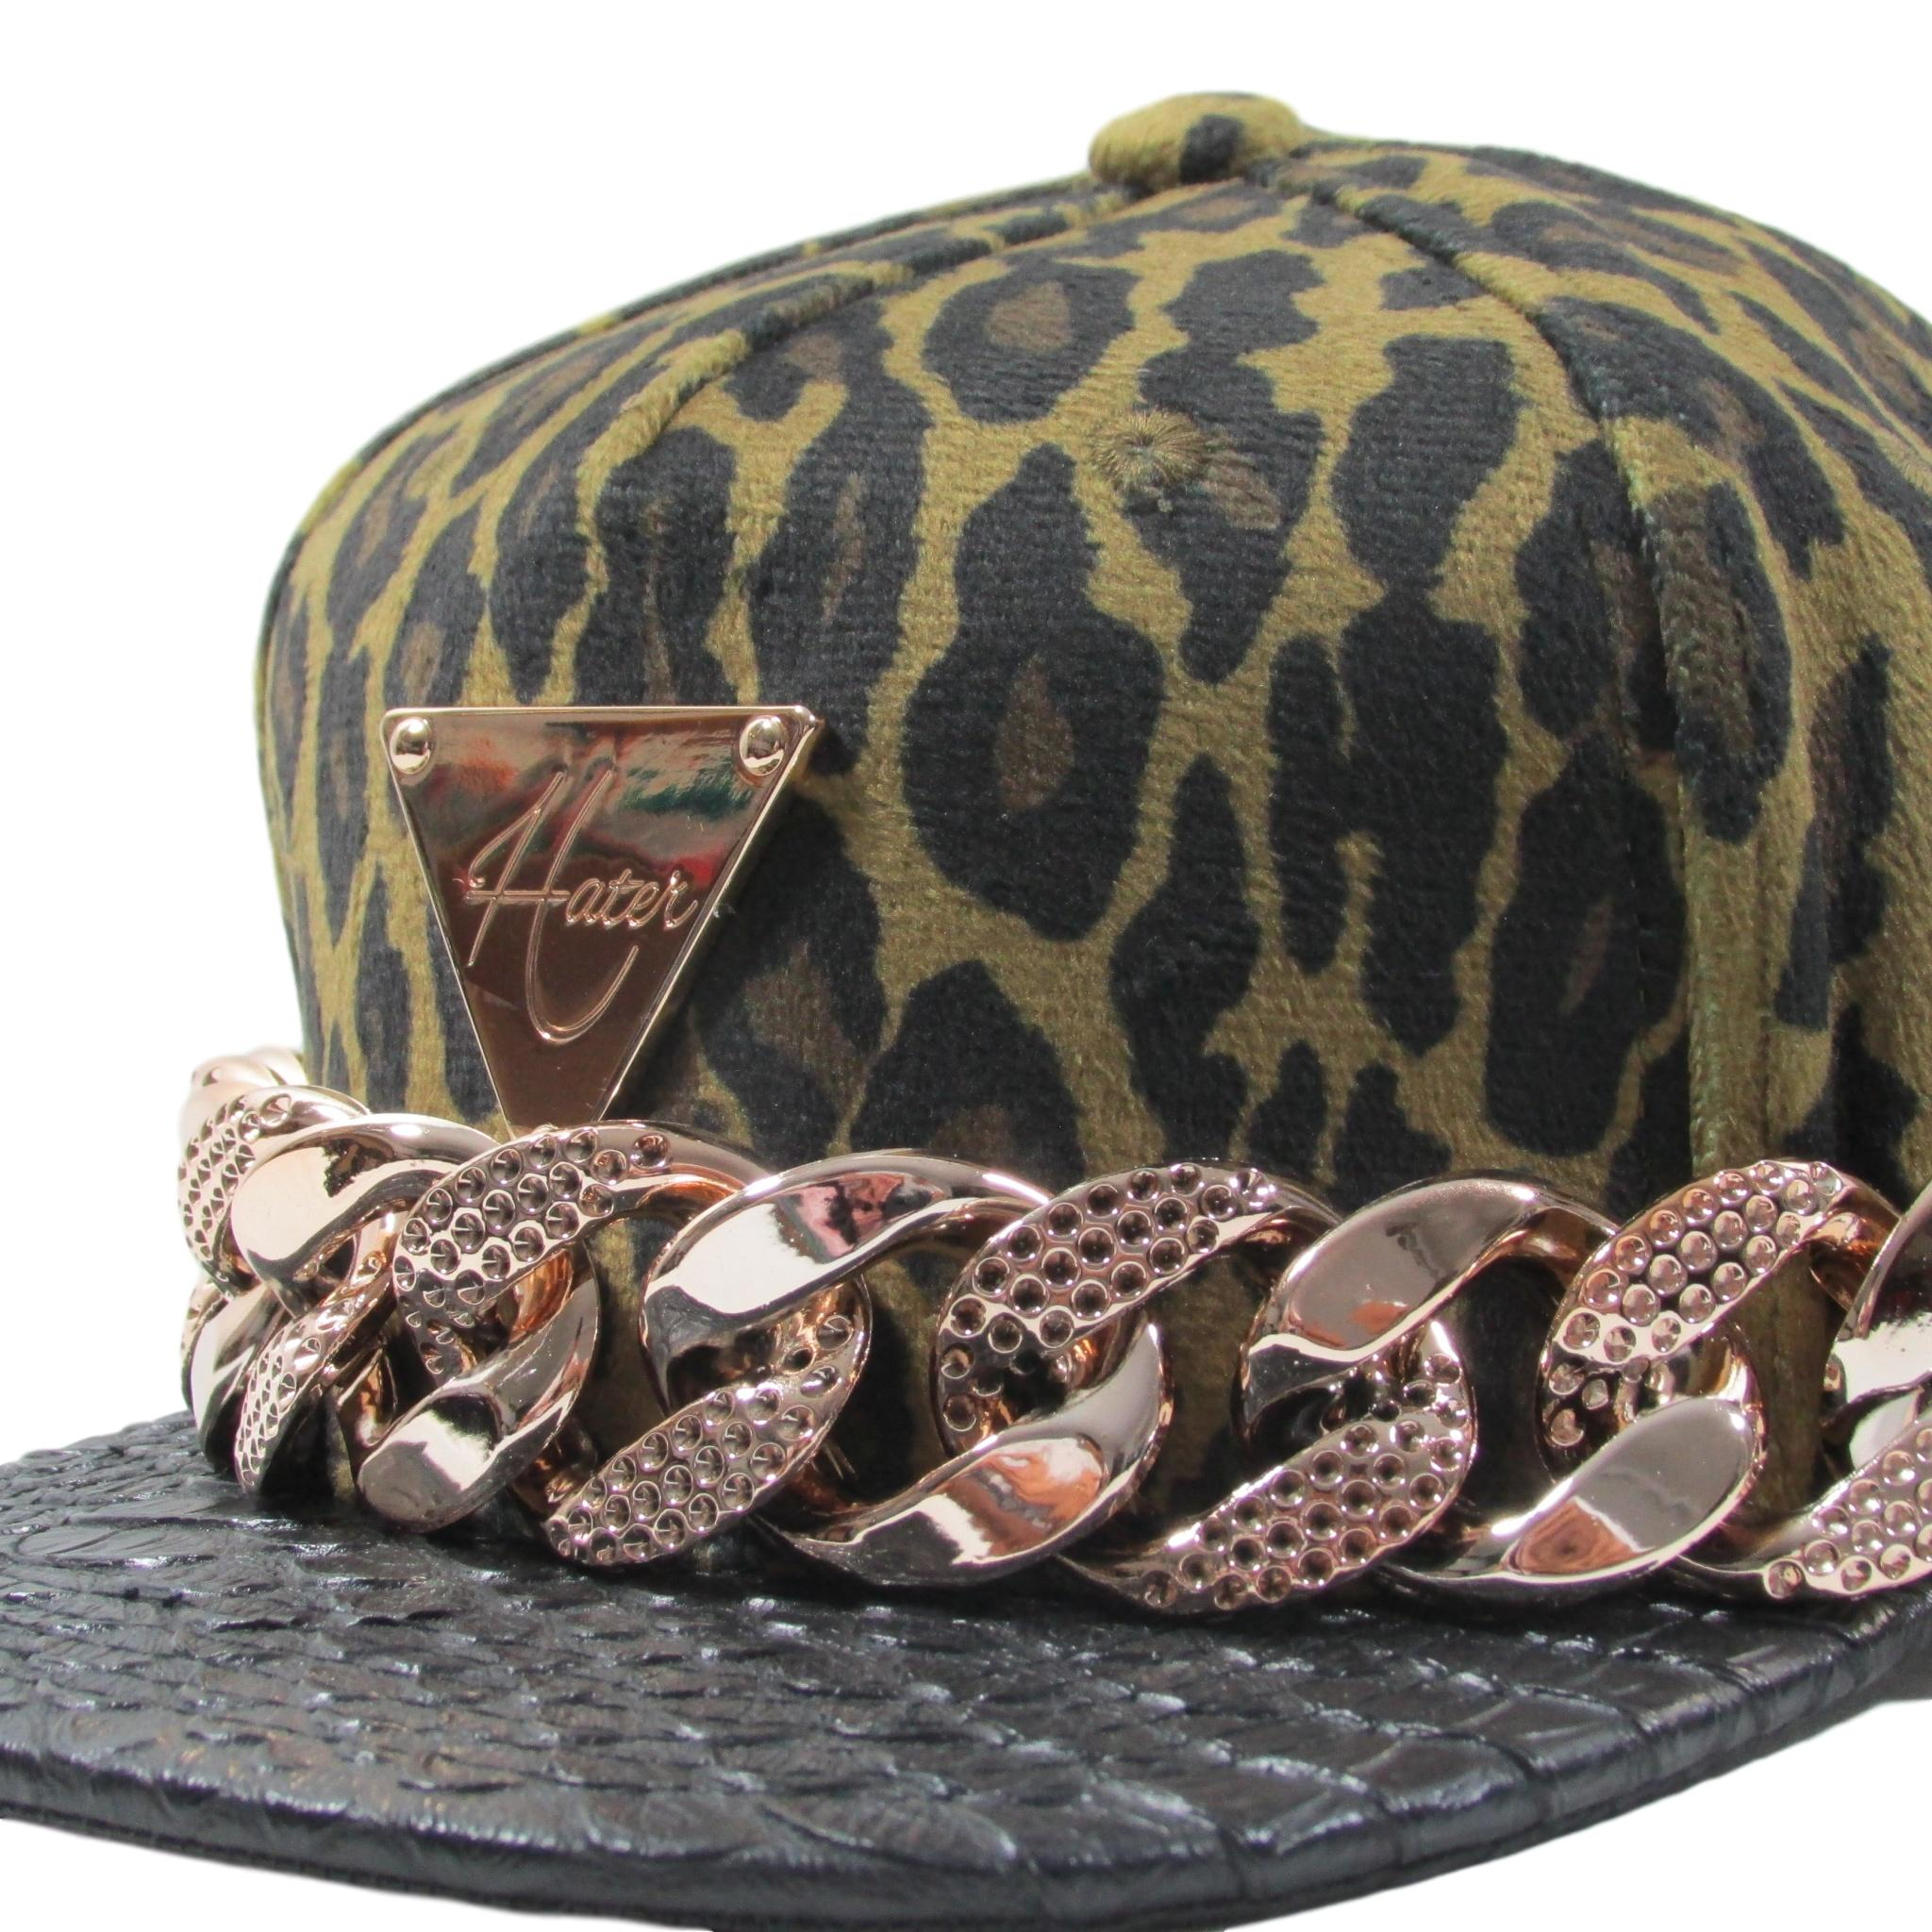 HATer Gold Chain Cheetah Velour Print Strapback Hat Leather Brim Snapback